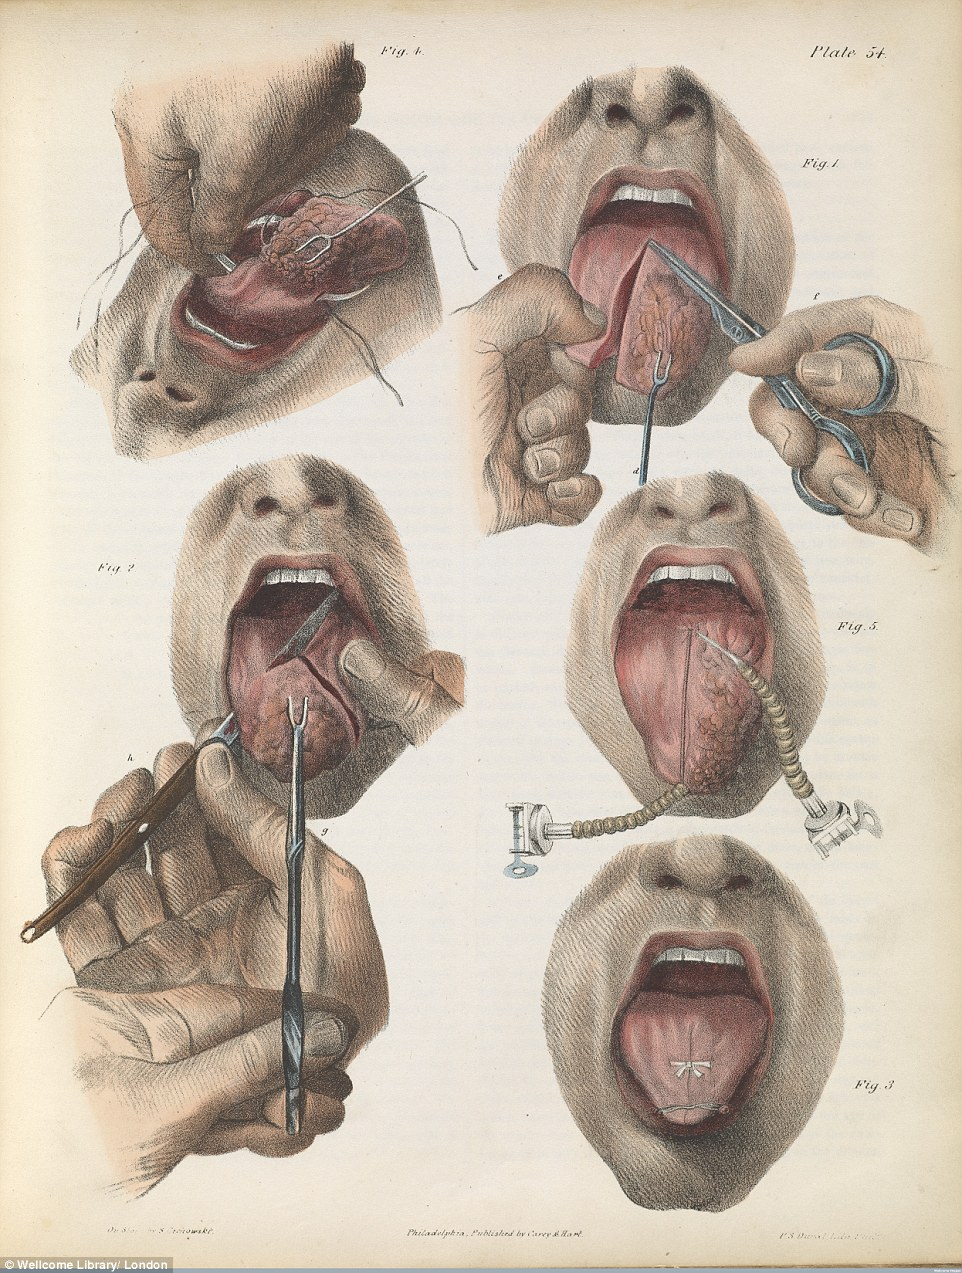 Drawn tongue finger  show the cancer Gory: